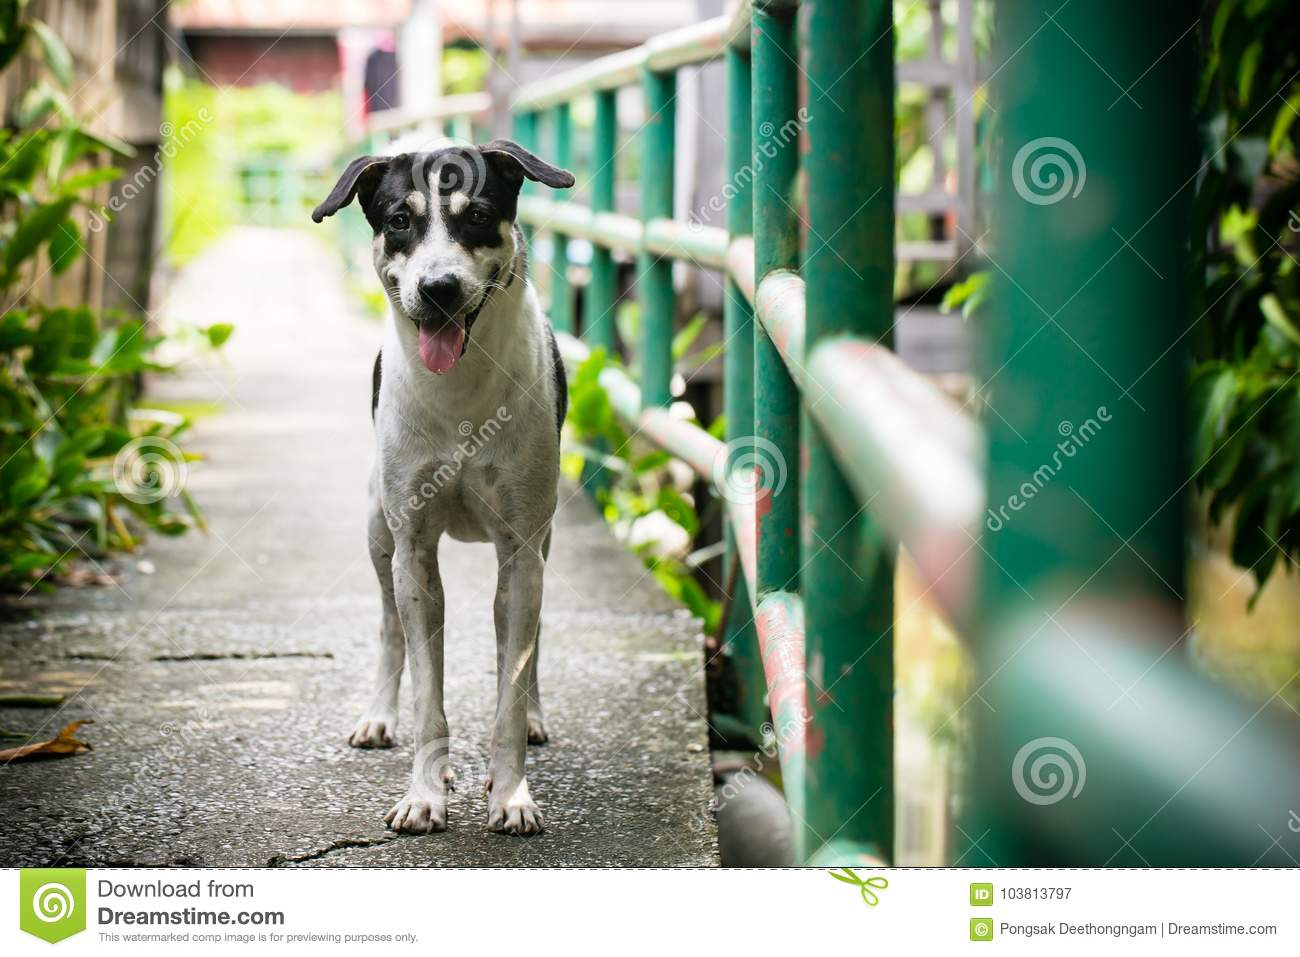 Outstanding Sad Homeless Stray Dog Stock Image Image Of Outdoor 103813797 Download Free Architecture Designs Intelgarnamadebymaigaardcom